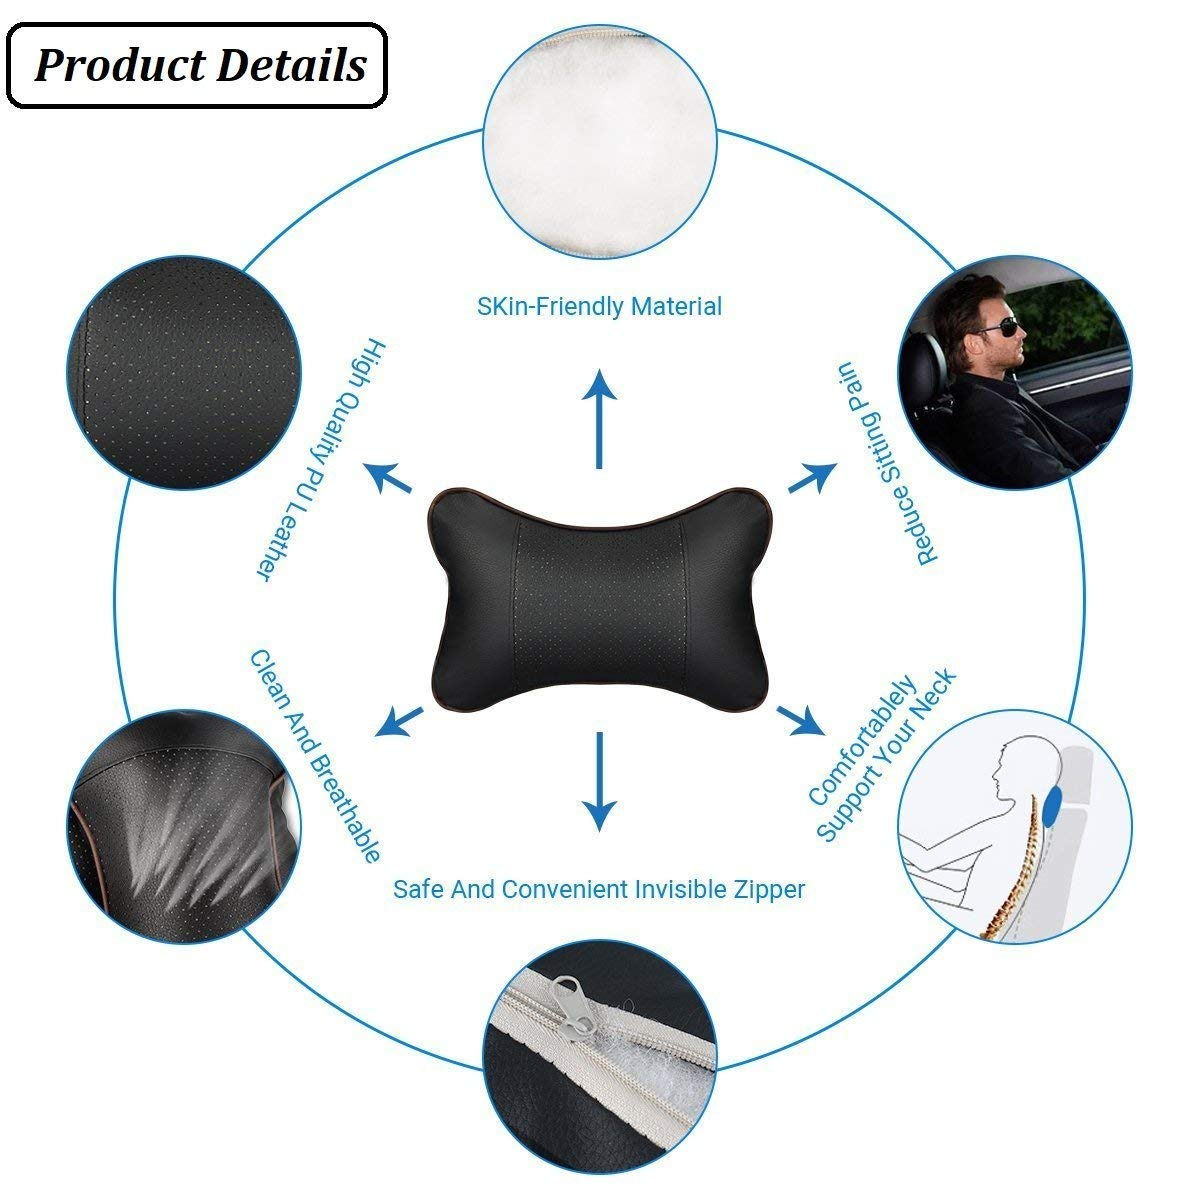 VVHOOY PU Leather Neck Pillow for Car,2 PCS Comfortable Soft Breathable Neck Support Pillow for Driving Head Neck Rest Cushion for Car Seat